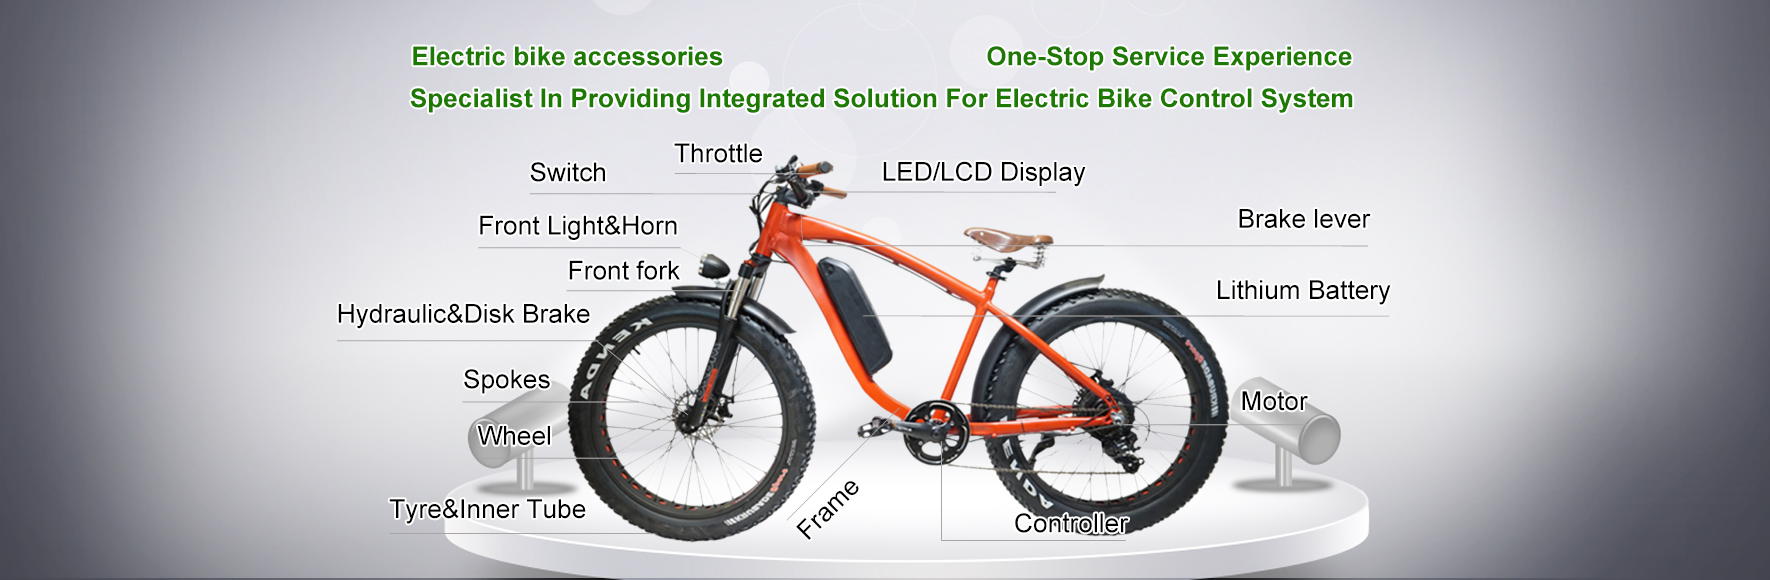 Electric bike accessories